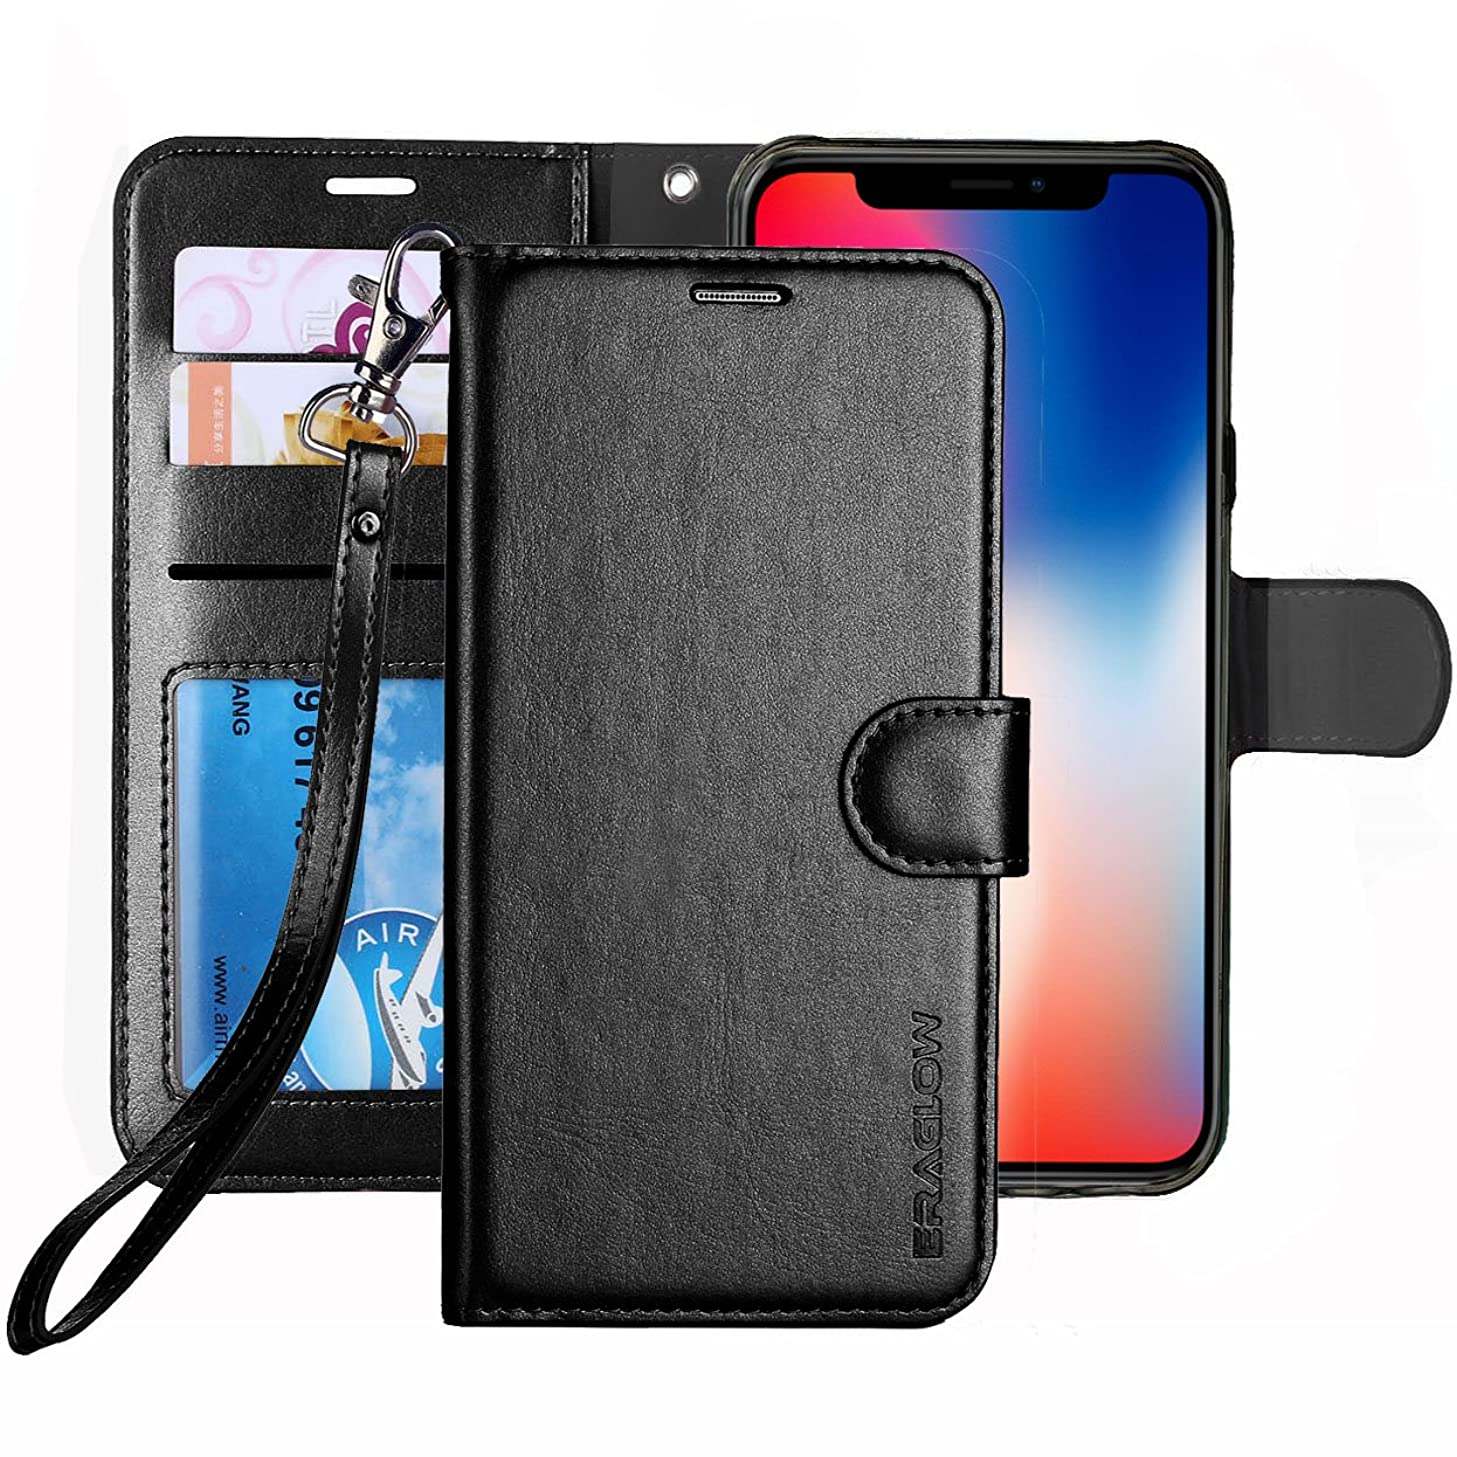 ERAGLOW for iPhone X/Xs Case, Luxury PU Leather Wallet Flip Protective Case Cover with Card Slots and kicktand for 5.8 inches iPhone X Xs (Black)